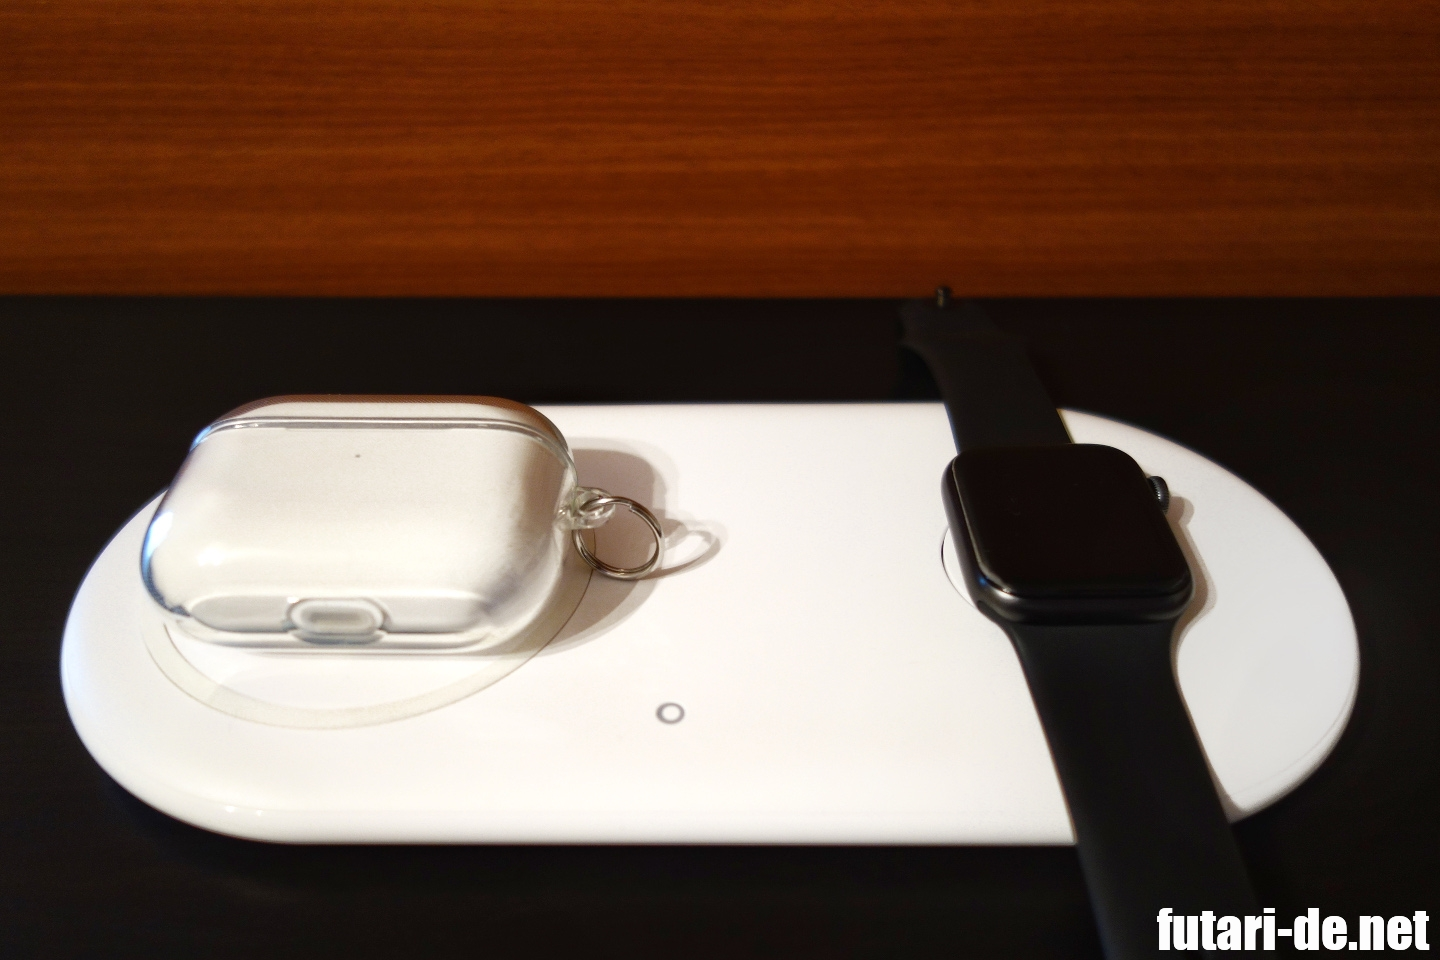 Charging AirPods Pro and AppleWatch